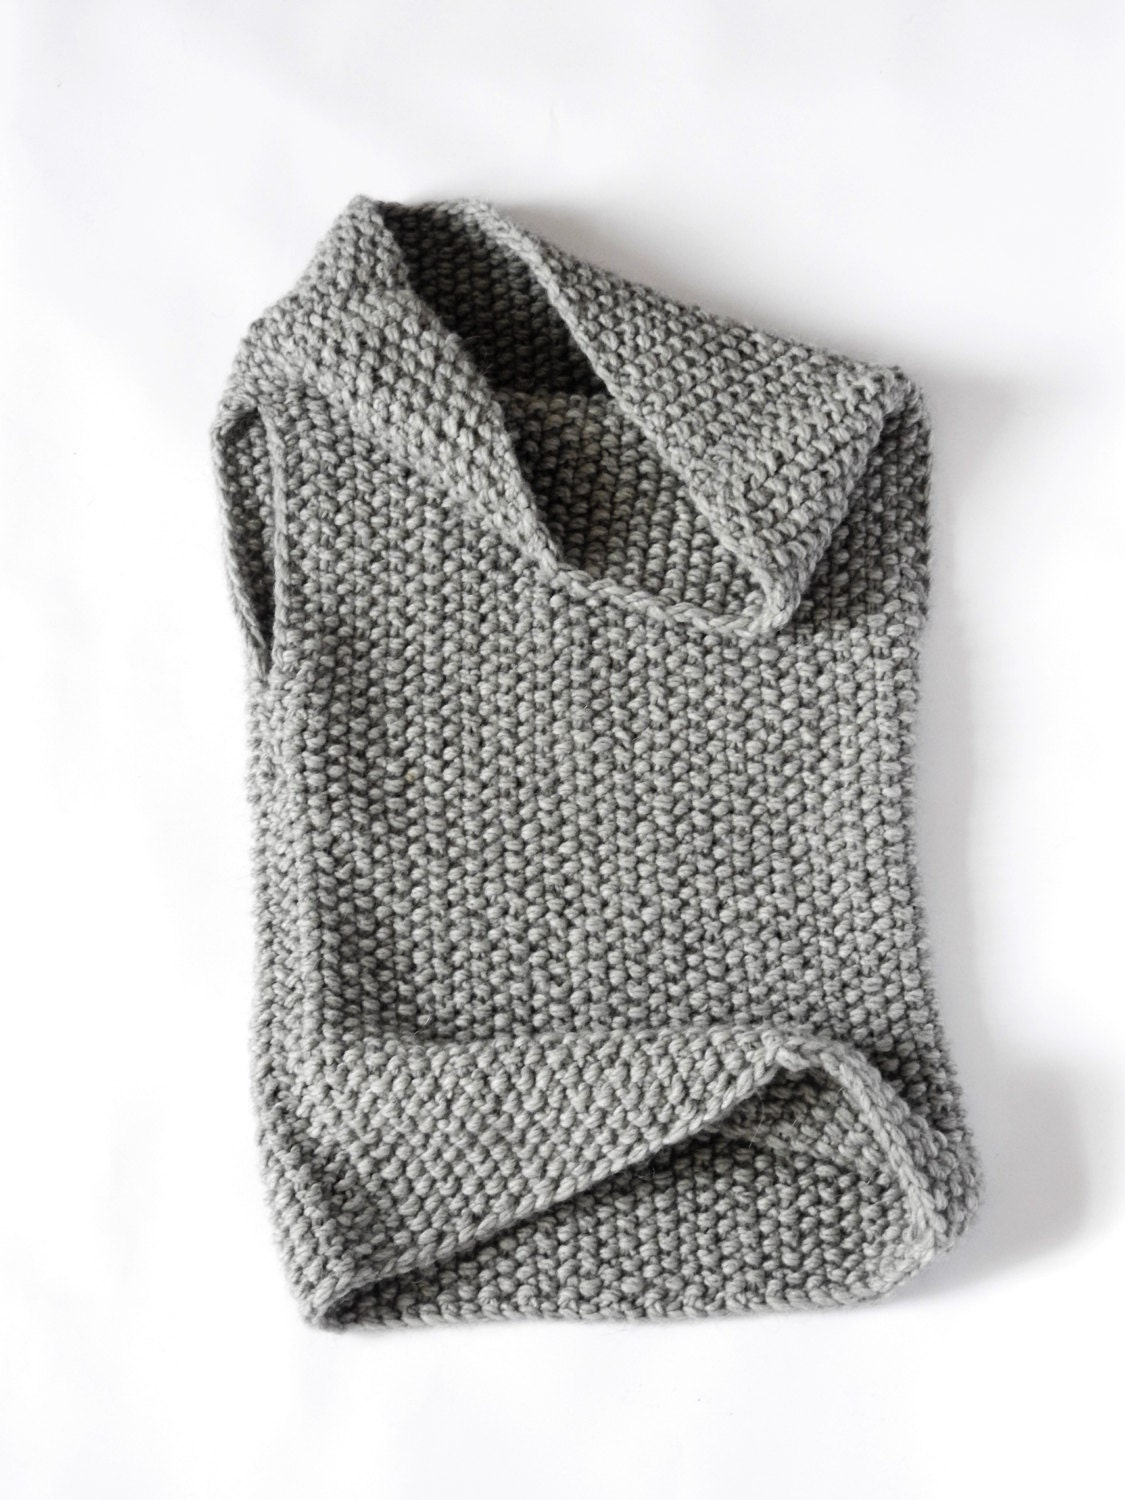 The Mavis / Chunky Knit Hooded Cowl Vest / Hand knitted wear/